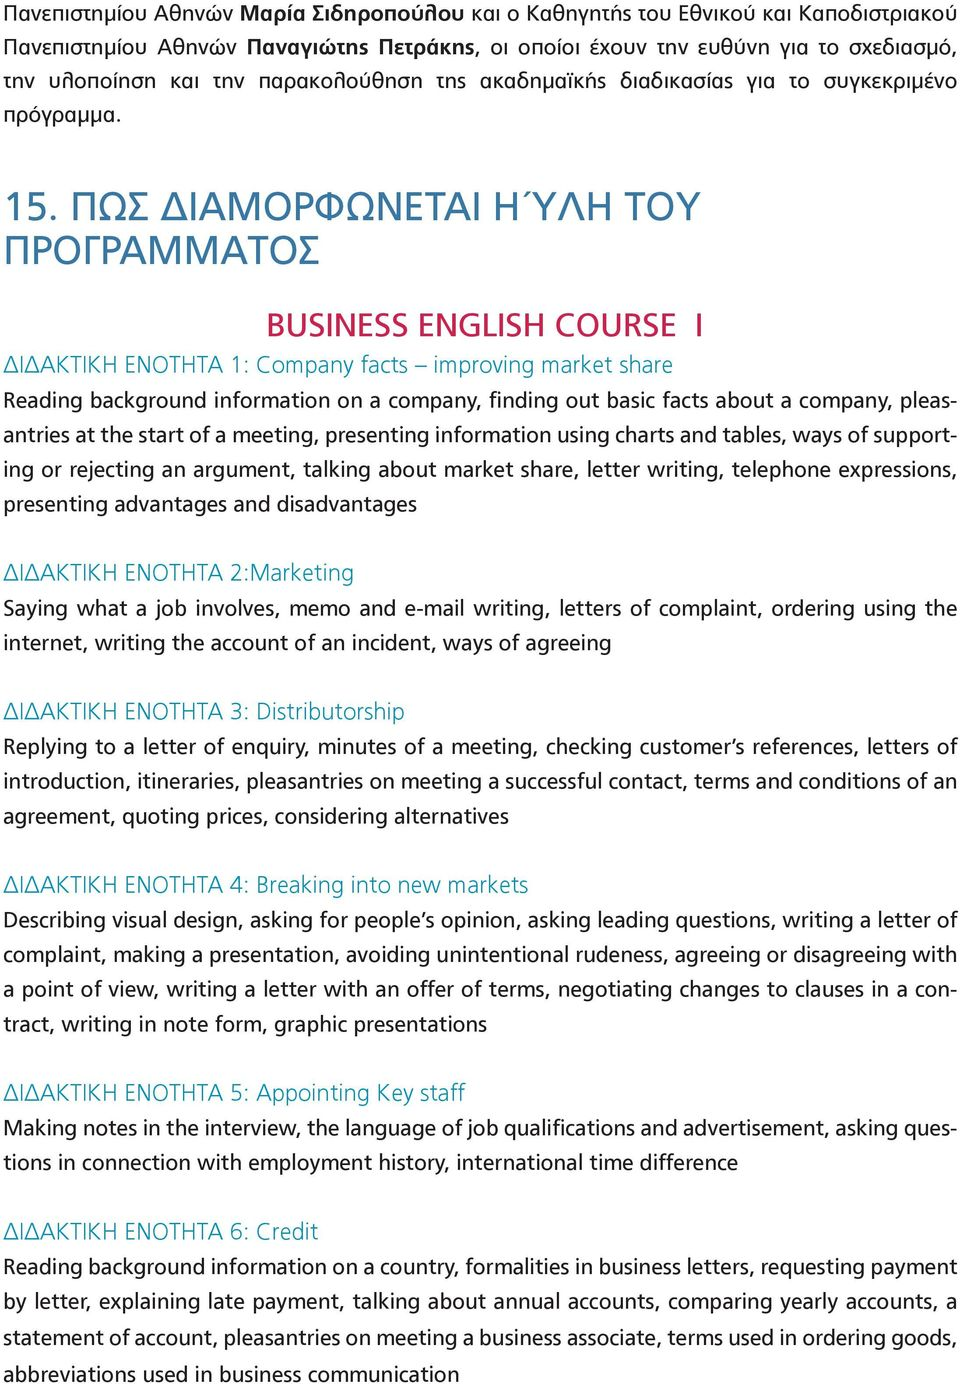 ΠΩΣ ΔΙΑΜΟΡΦΩΝΕΤΑΙ Η ΎΛΗ ΤΟΥ ΠΡΟΓΡΑΜΜΑΤΟΣ BUSINESS ENGLISH COURSE I ΔΙΔΑΚΤΙΚΗ ΕΝΟΤΗΤΑ 1: Company facts improving market share Reading background information on a company, finding out basic facts about